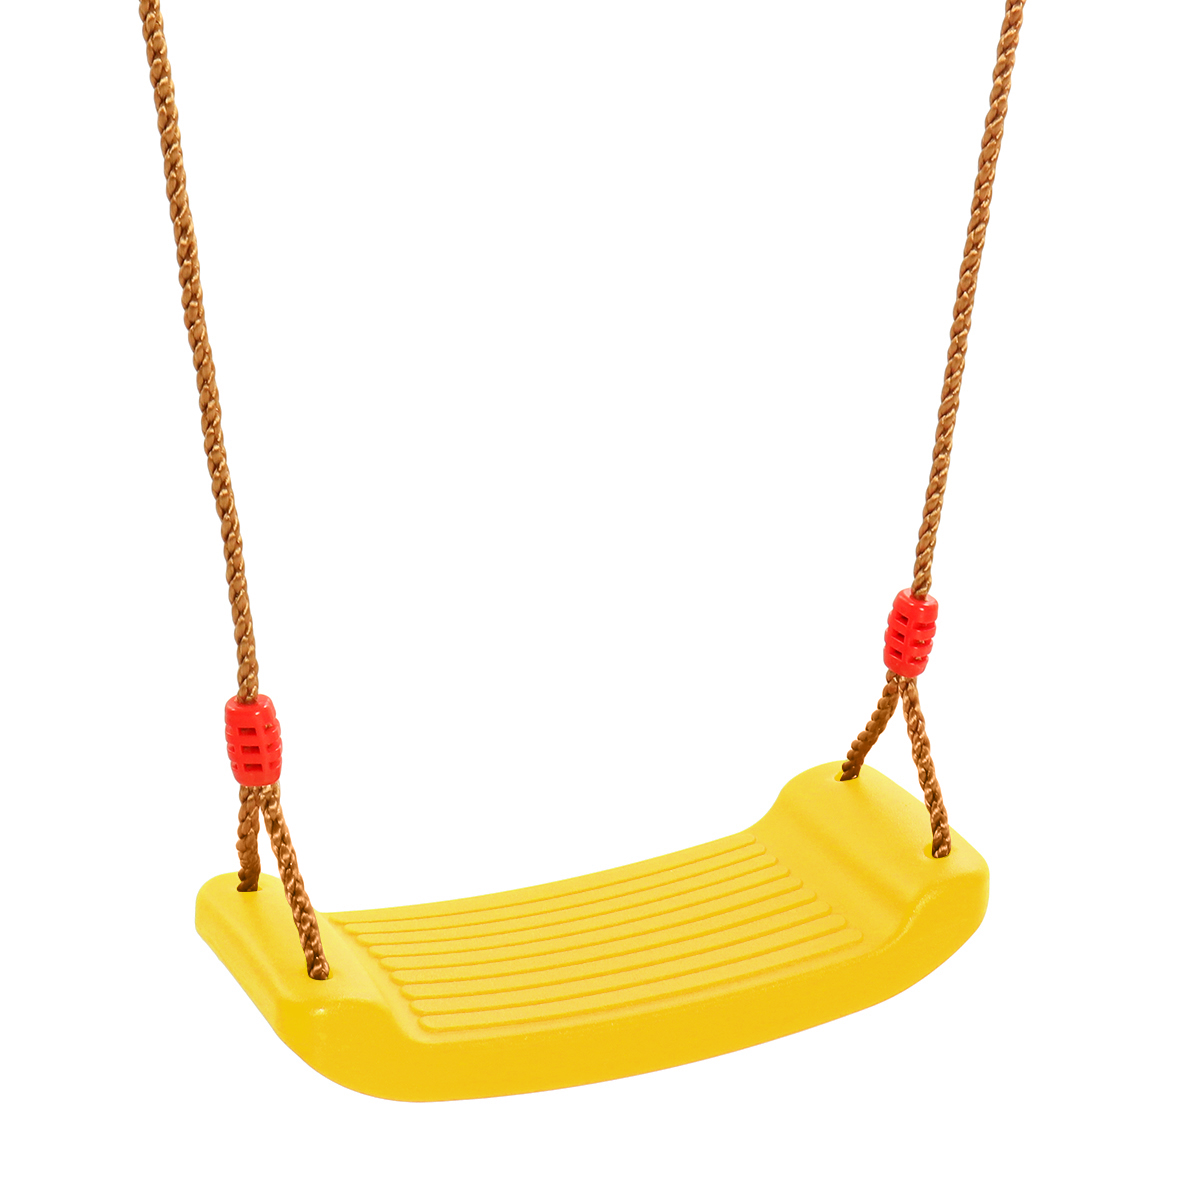 Cateam Swing seat Red for Kids and Adults with Length Control Hinge Triangle carabiners Included Ninja line Ready 220lb Load Playground Swing Set Accessories Replacement